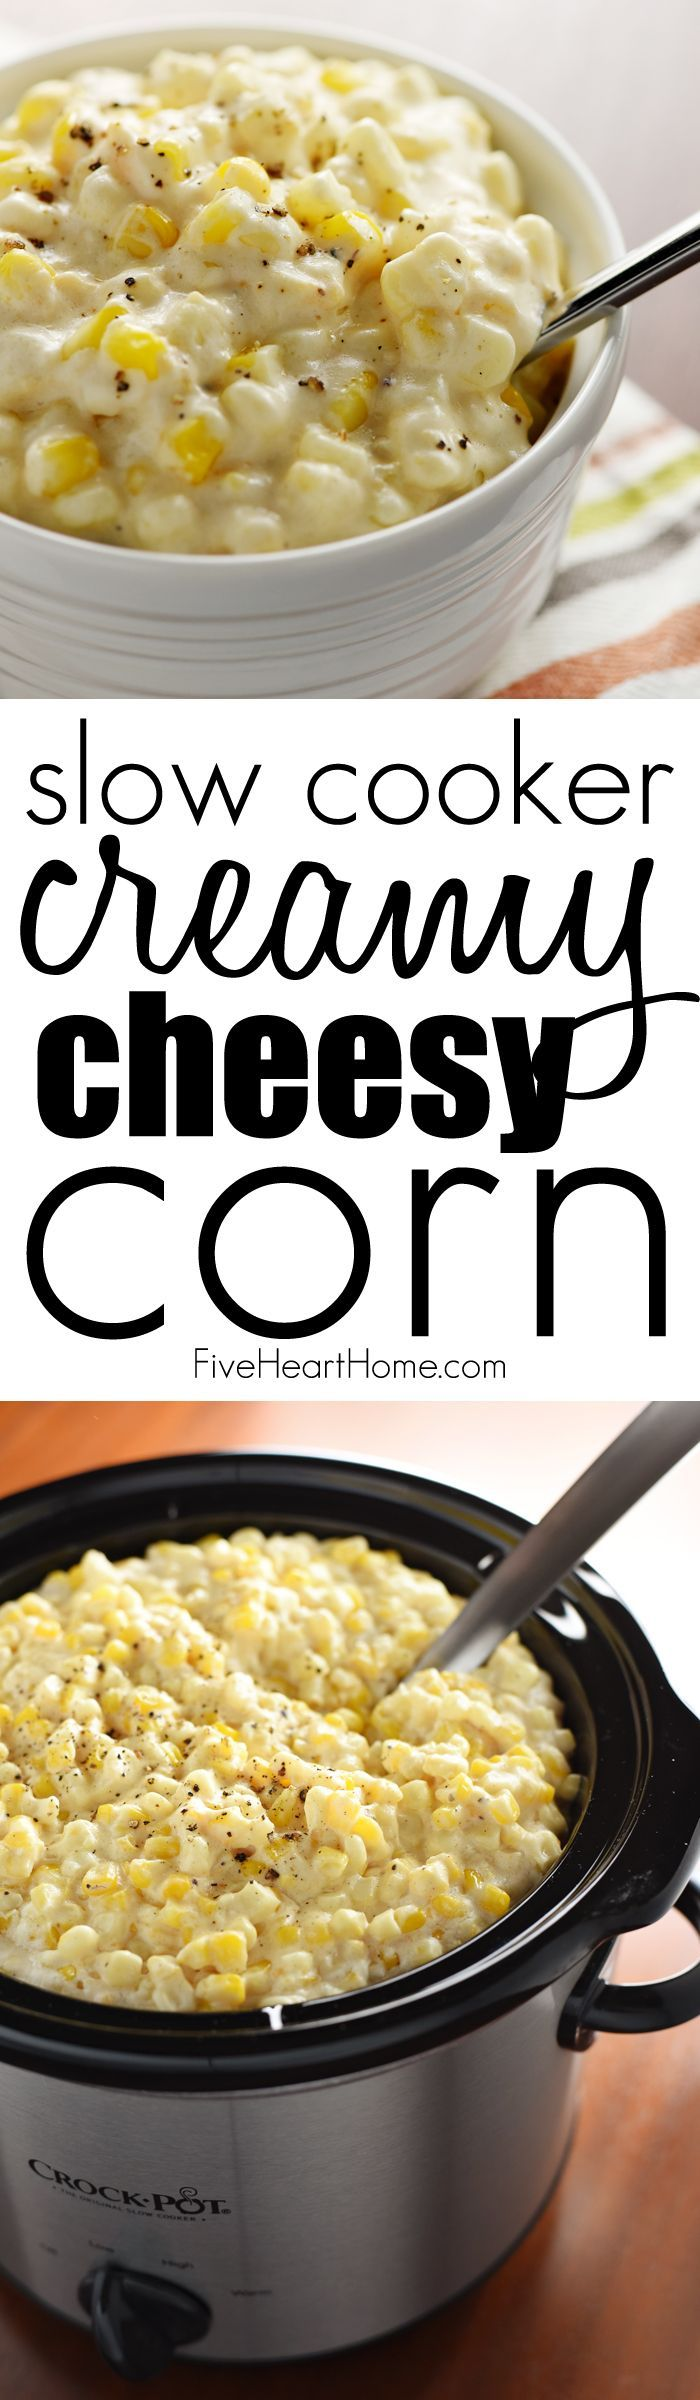 Slow Cooker Creamy Cheesy Corn ~ a rich, comforting side dish that's the perfect addition to any holiday menu...because not only is this recipe delicious, but it also frees up the stove and oven! | http://FiveHeartHome.com (Slow Cooker Christmas Drinks)